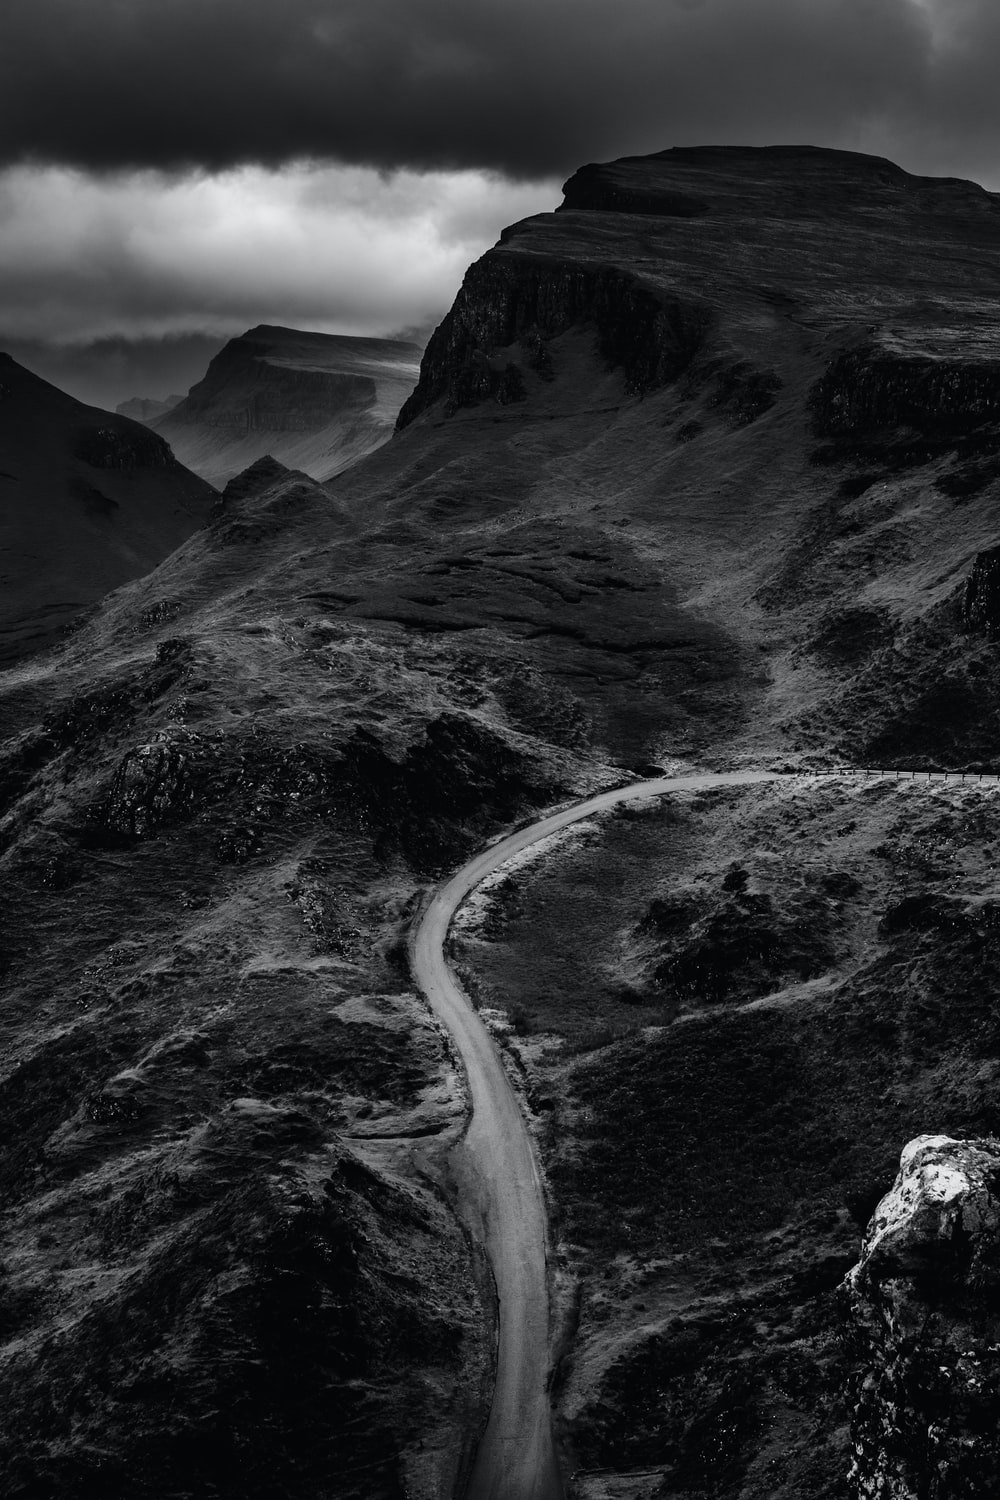 grayscale photo of road between mountain